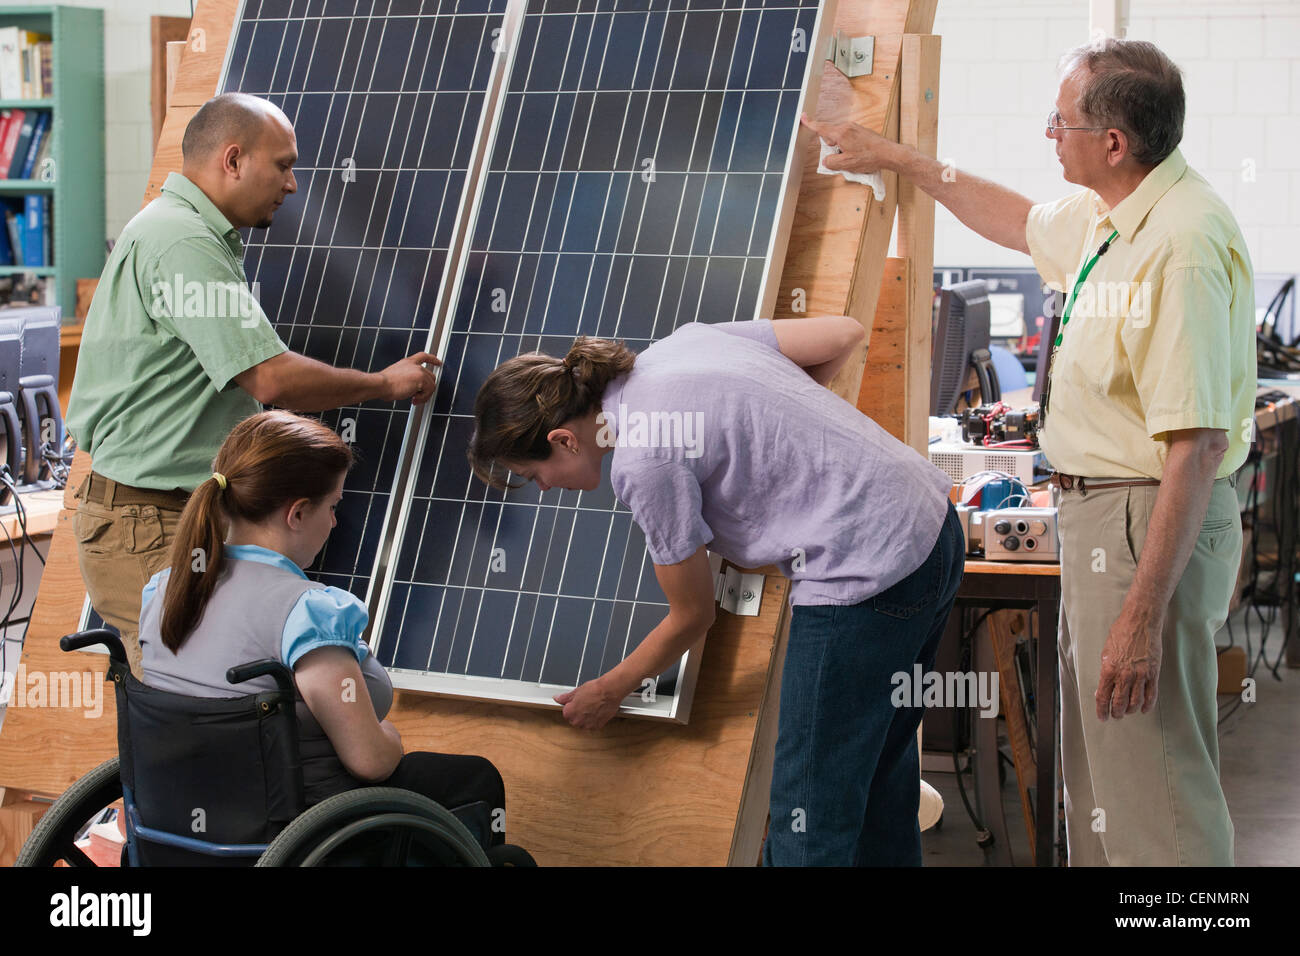 Engineering students examining photovoltaic panel's structural design and mounting - Stock Image